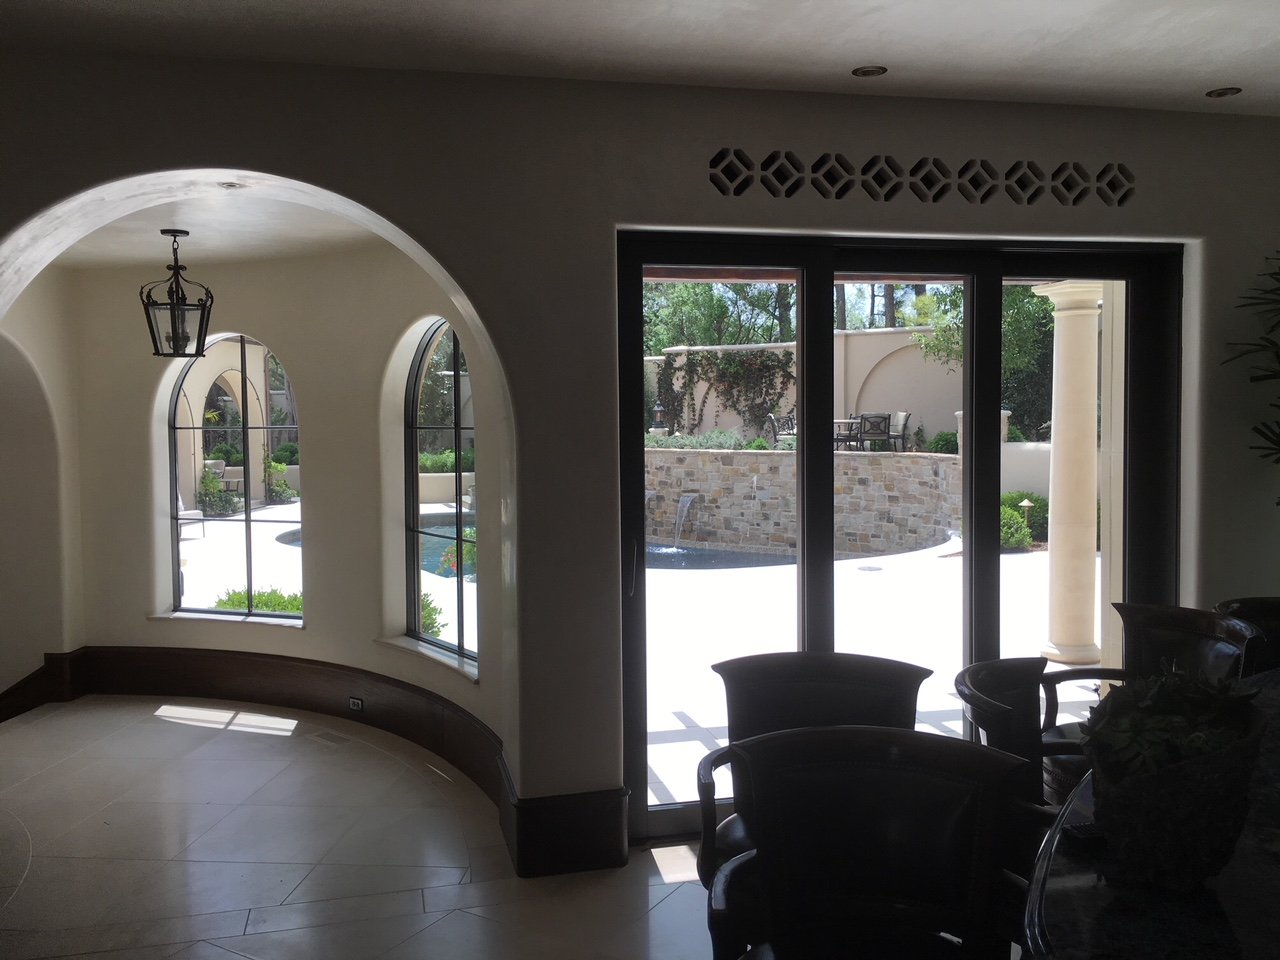 home window tinting Pocatello, Idaho and home window tinting Idaho falls, Idaho